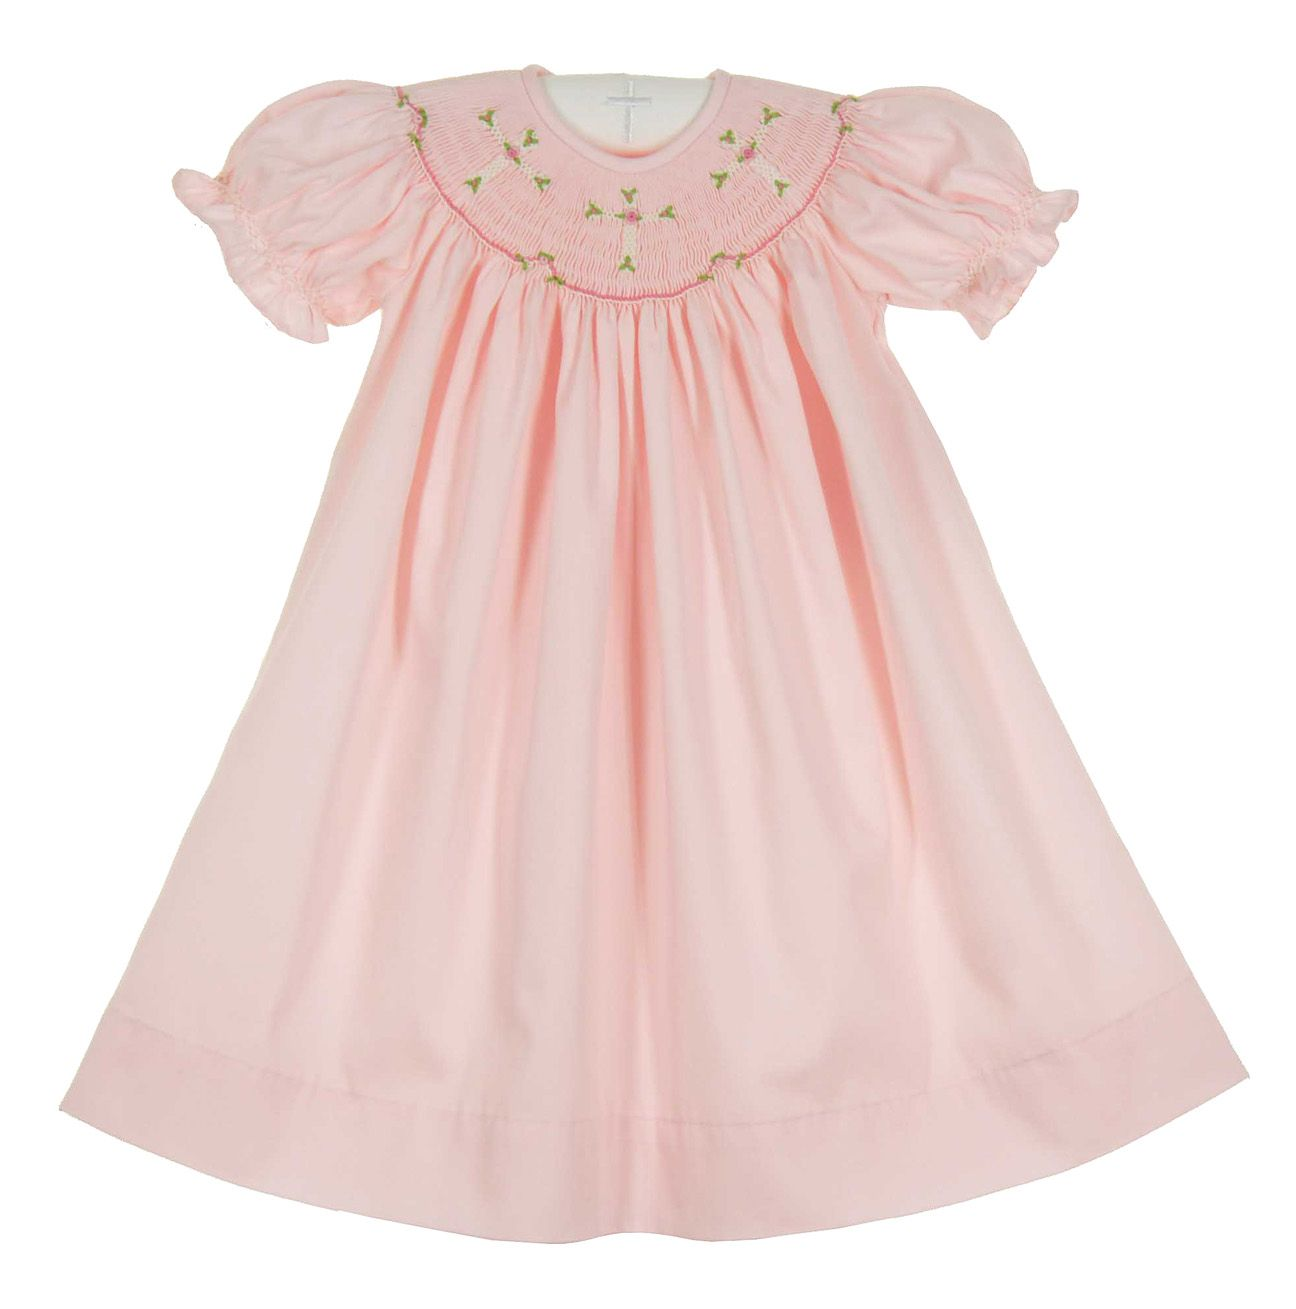 296ab170aa64 NEW Remember Nguyen Pink Bishop Smocked Dress with Embroidered Crosses  $40.00